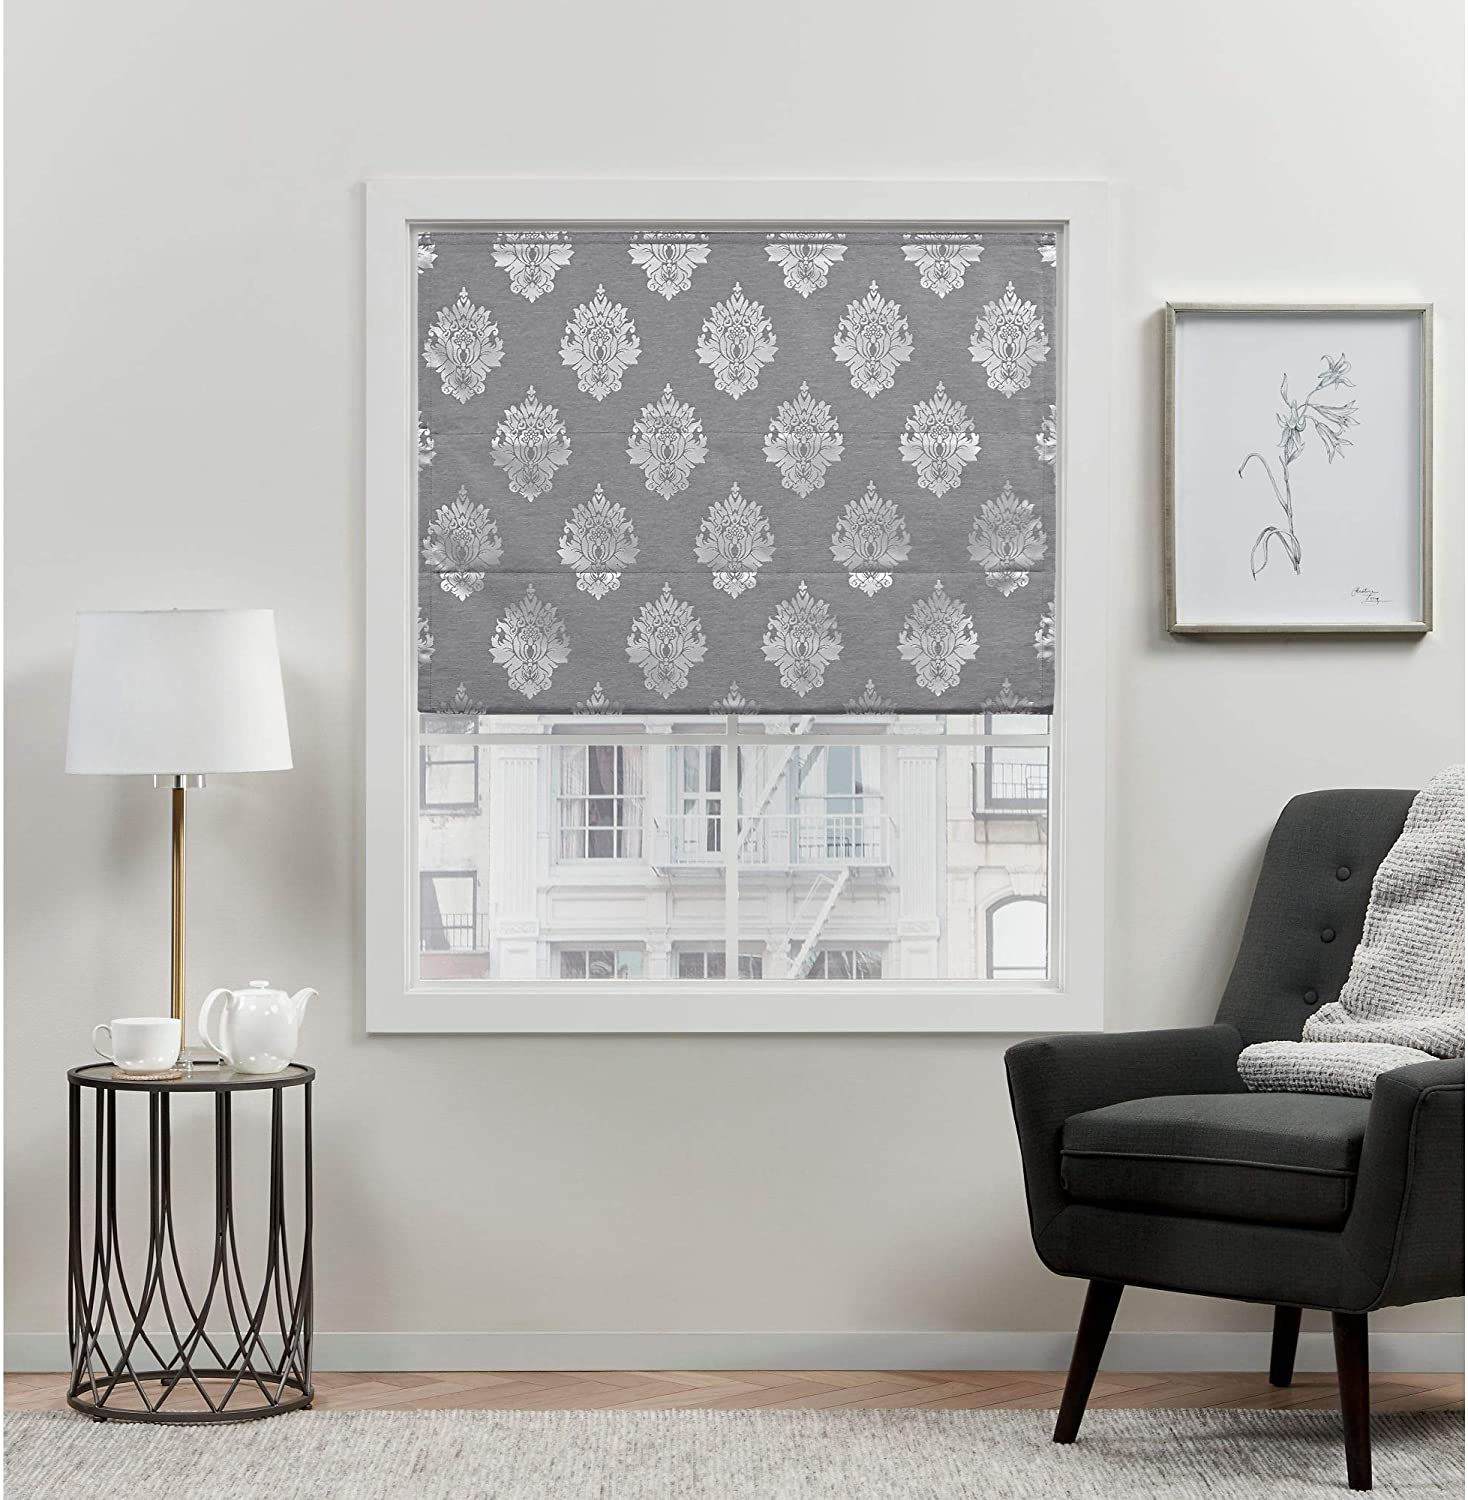 Exclusive Home Curtains Marseilles Damask Blackout Roman Shade, 31x64, Grey